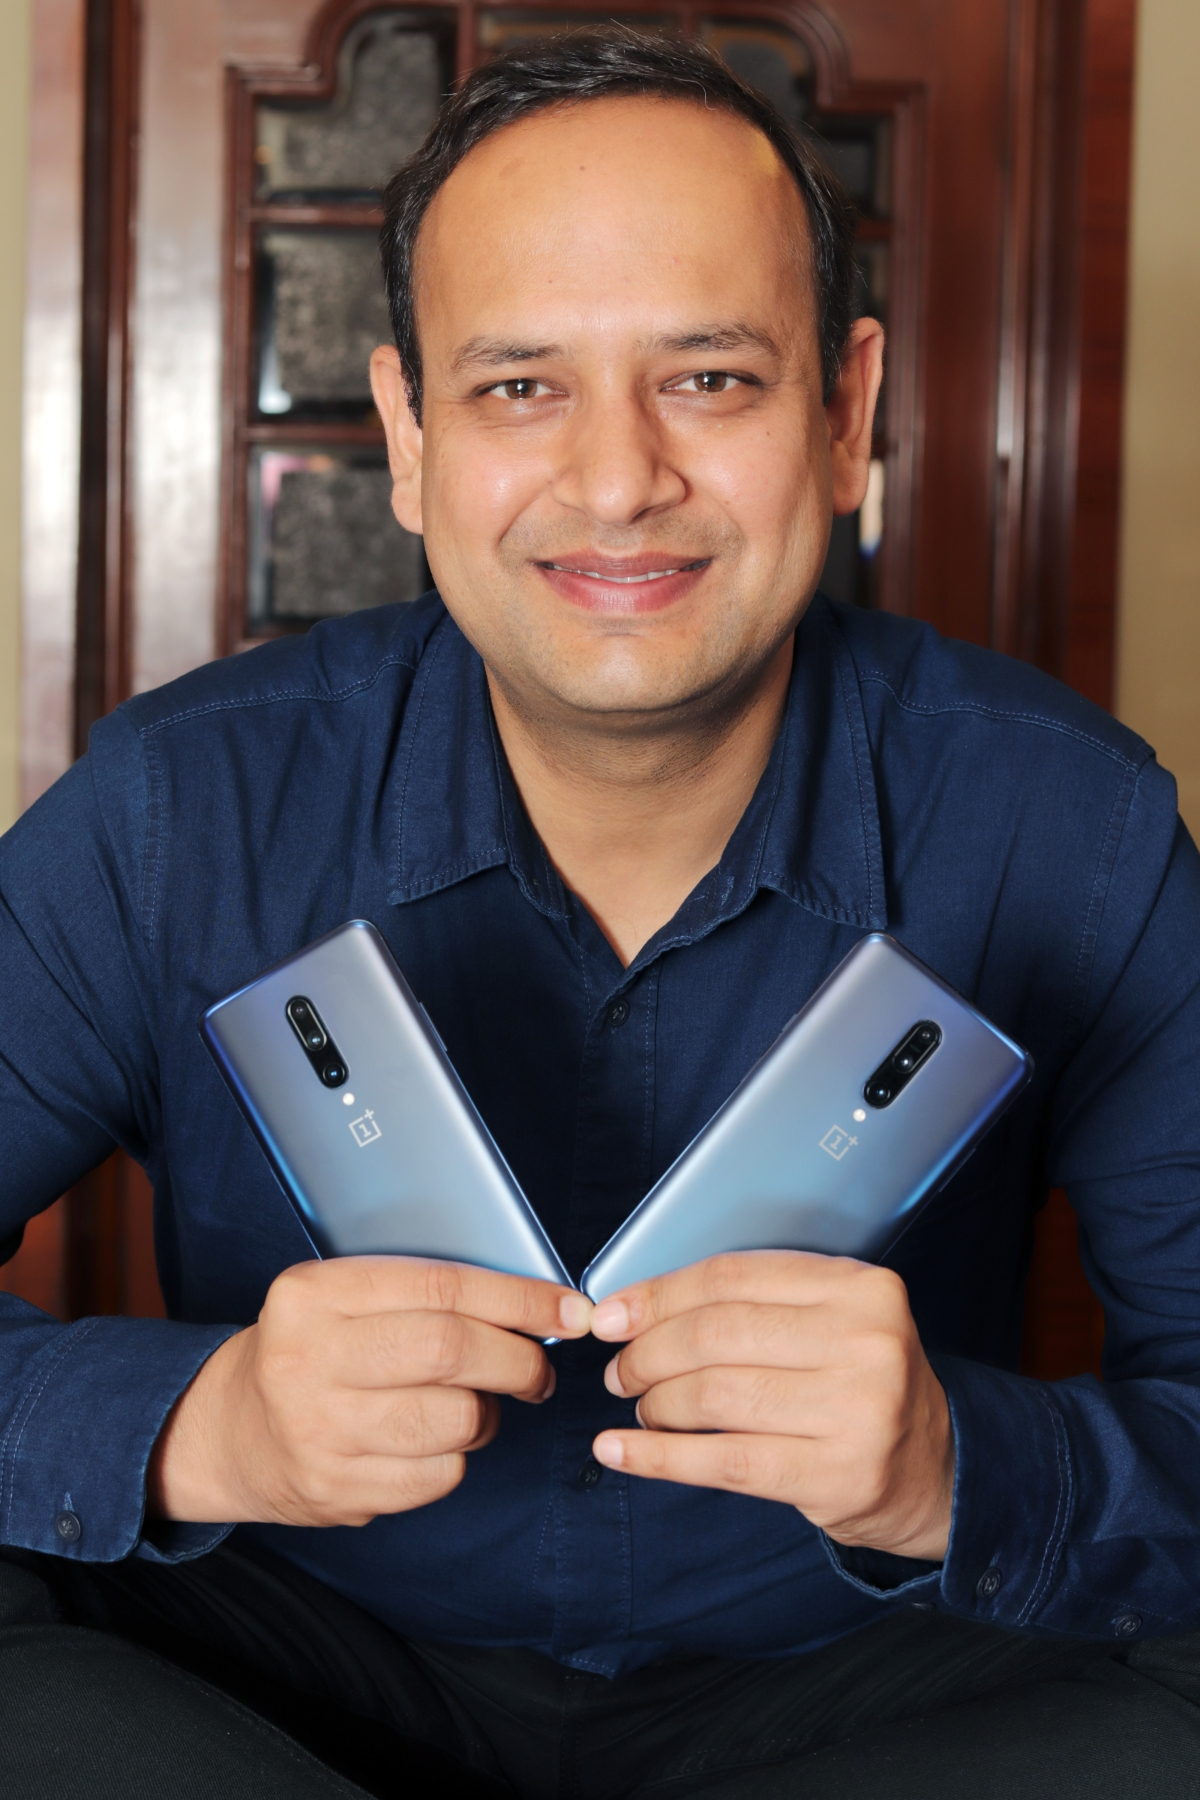 """Activations like music fests will help widen our reach"": Vikas Agarwal, OnePlus"